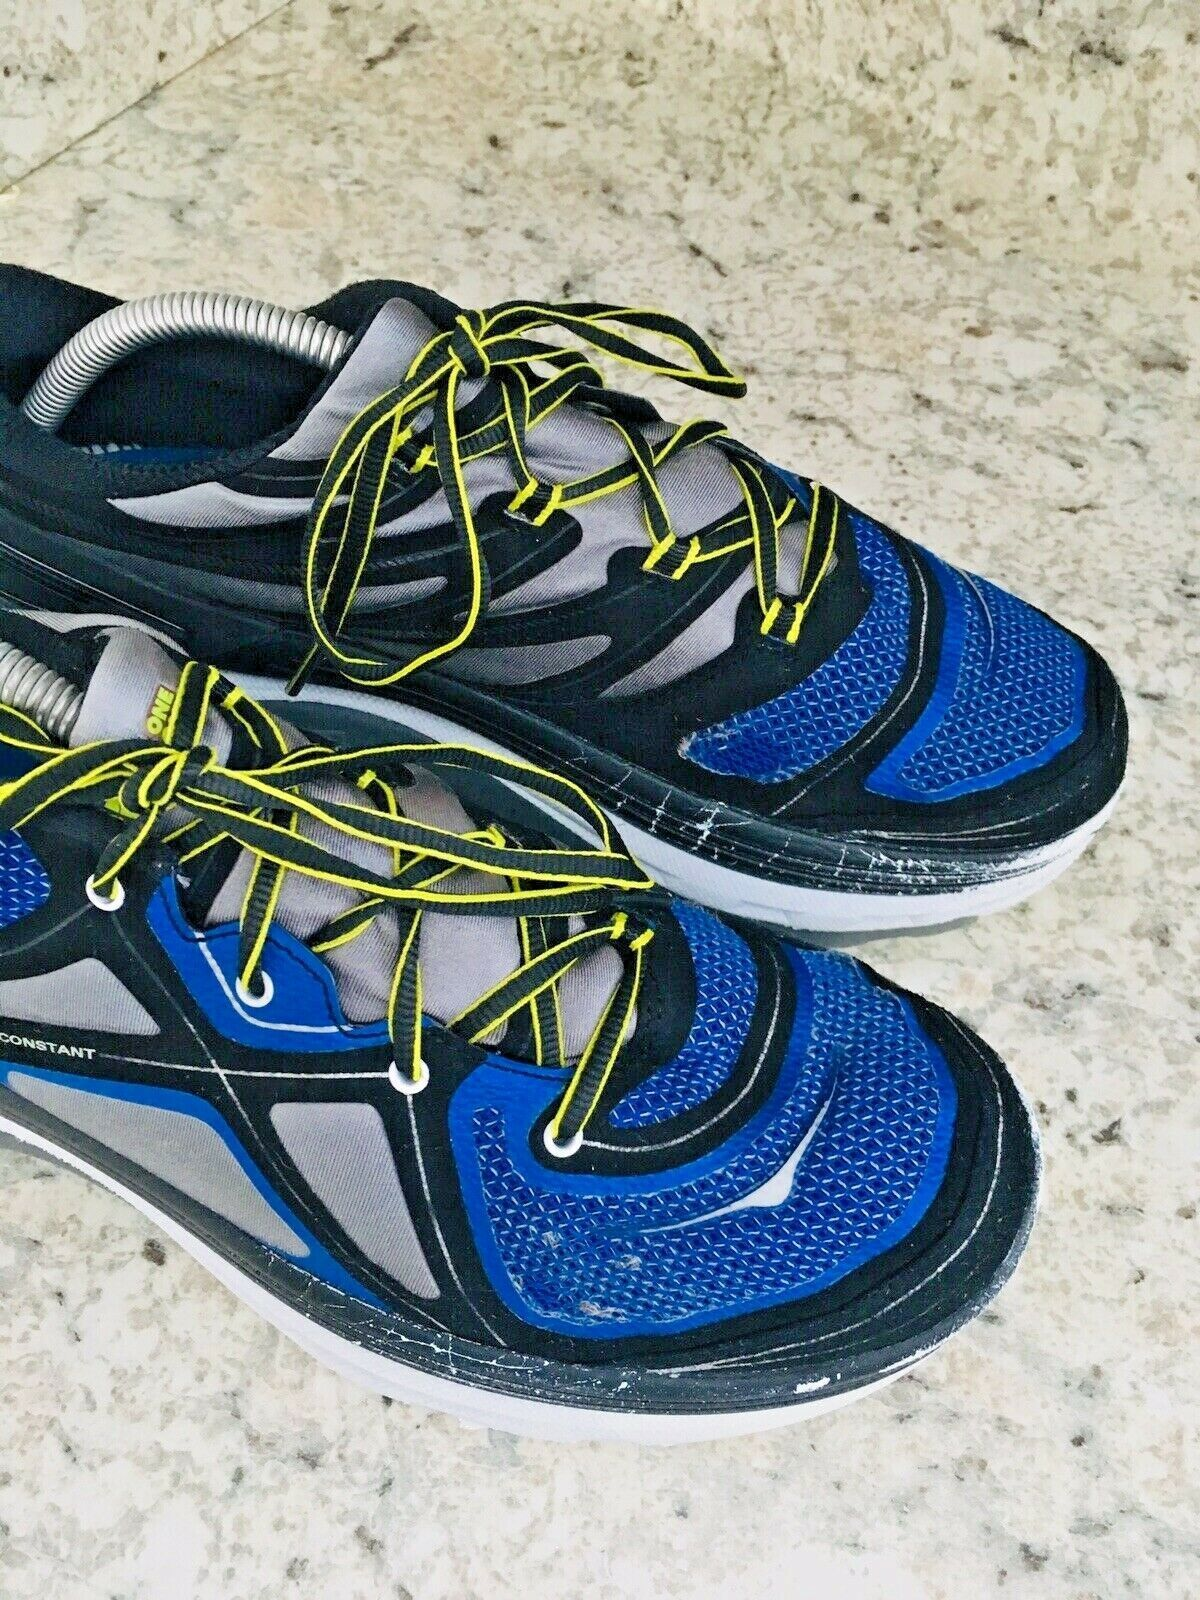 HOKA One One Constant Blue Yellow & Black running Shoes Men's SIZE 10 image 2